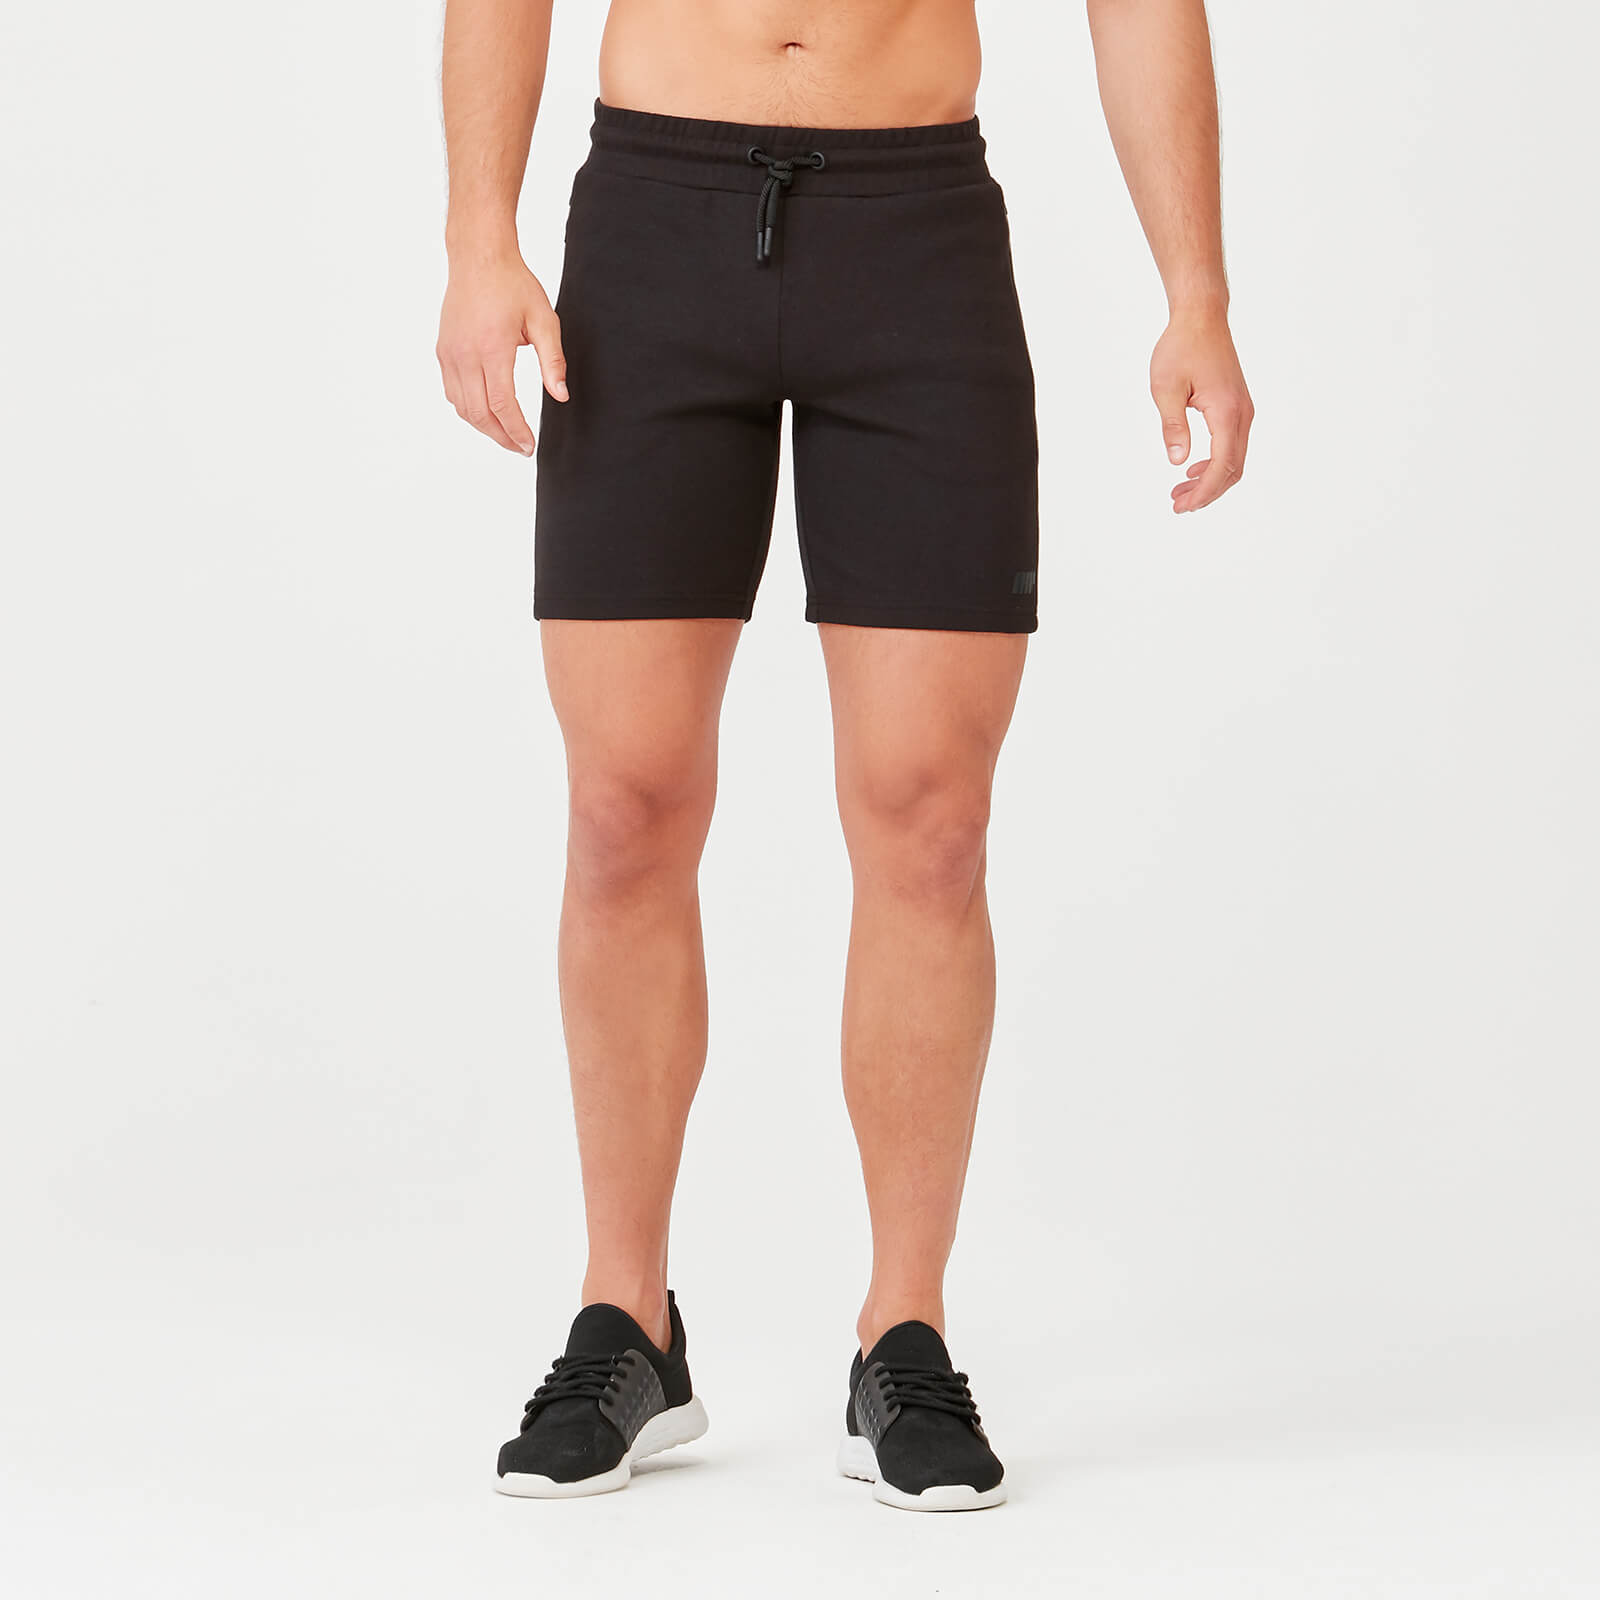 Pro Tech Shorts 2.0 - Black - S